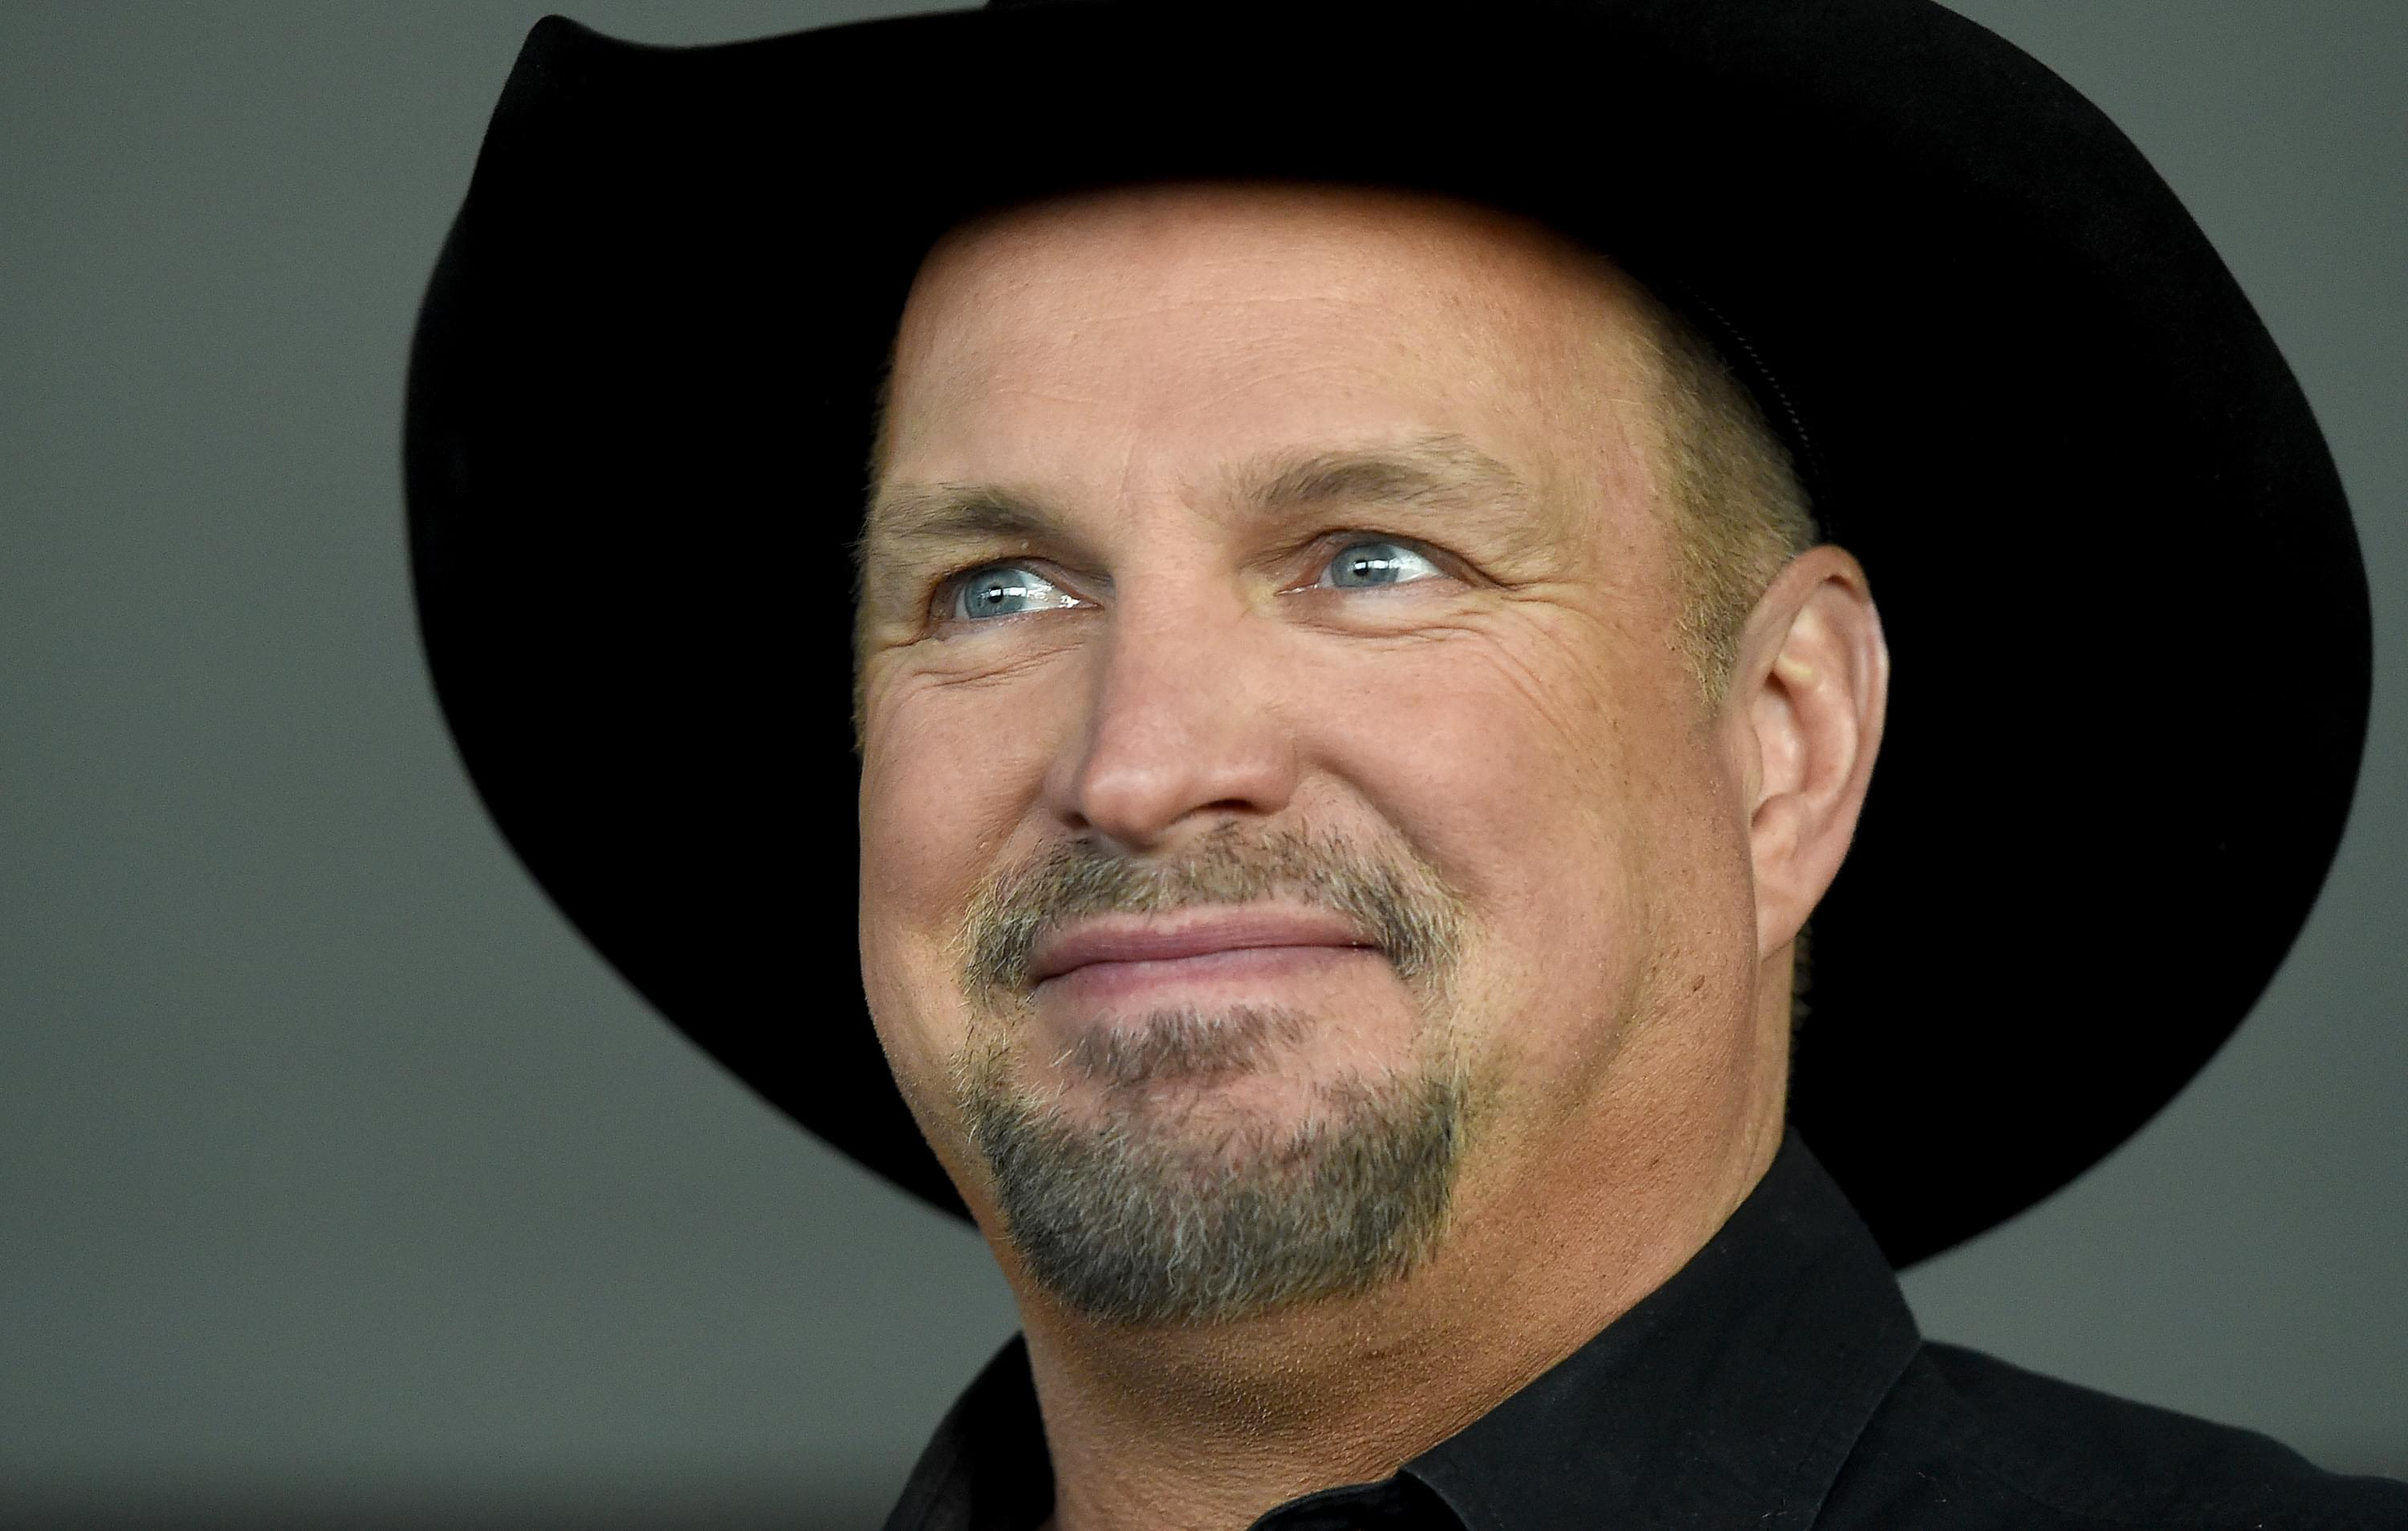 Garth Brooks Is The First Country Artist To Receive Billboard ICON Award